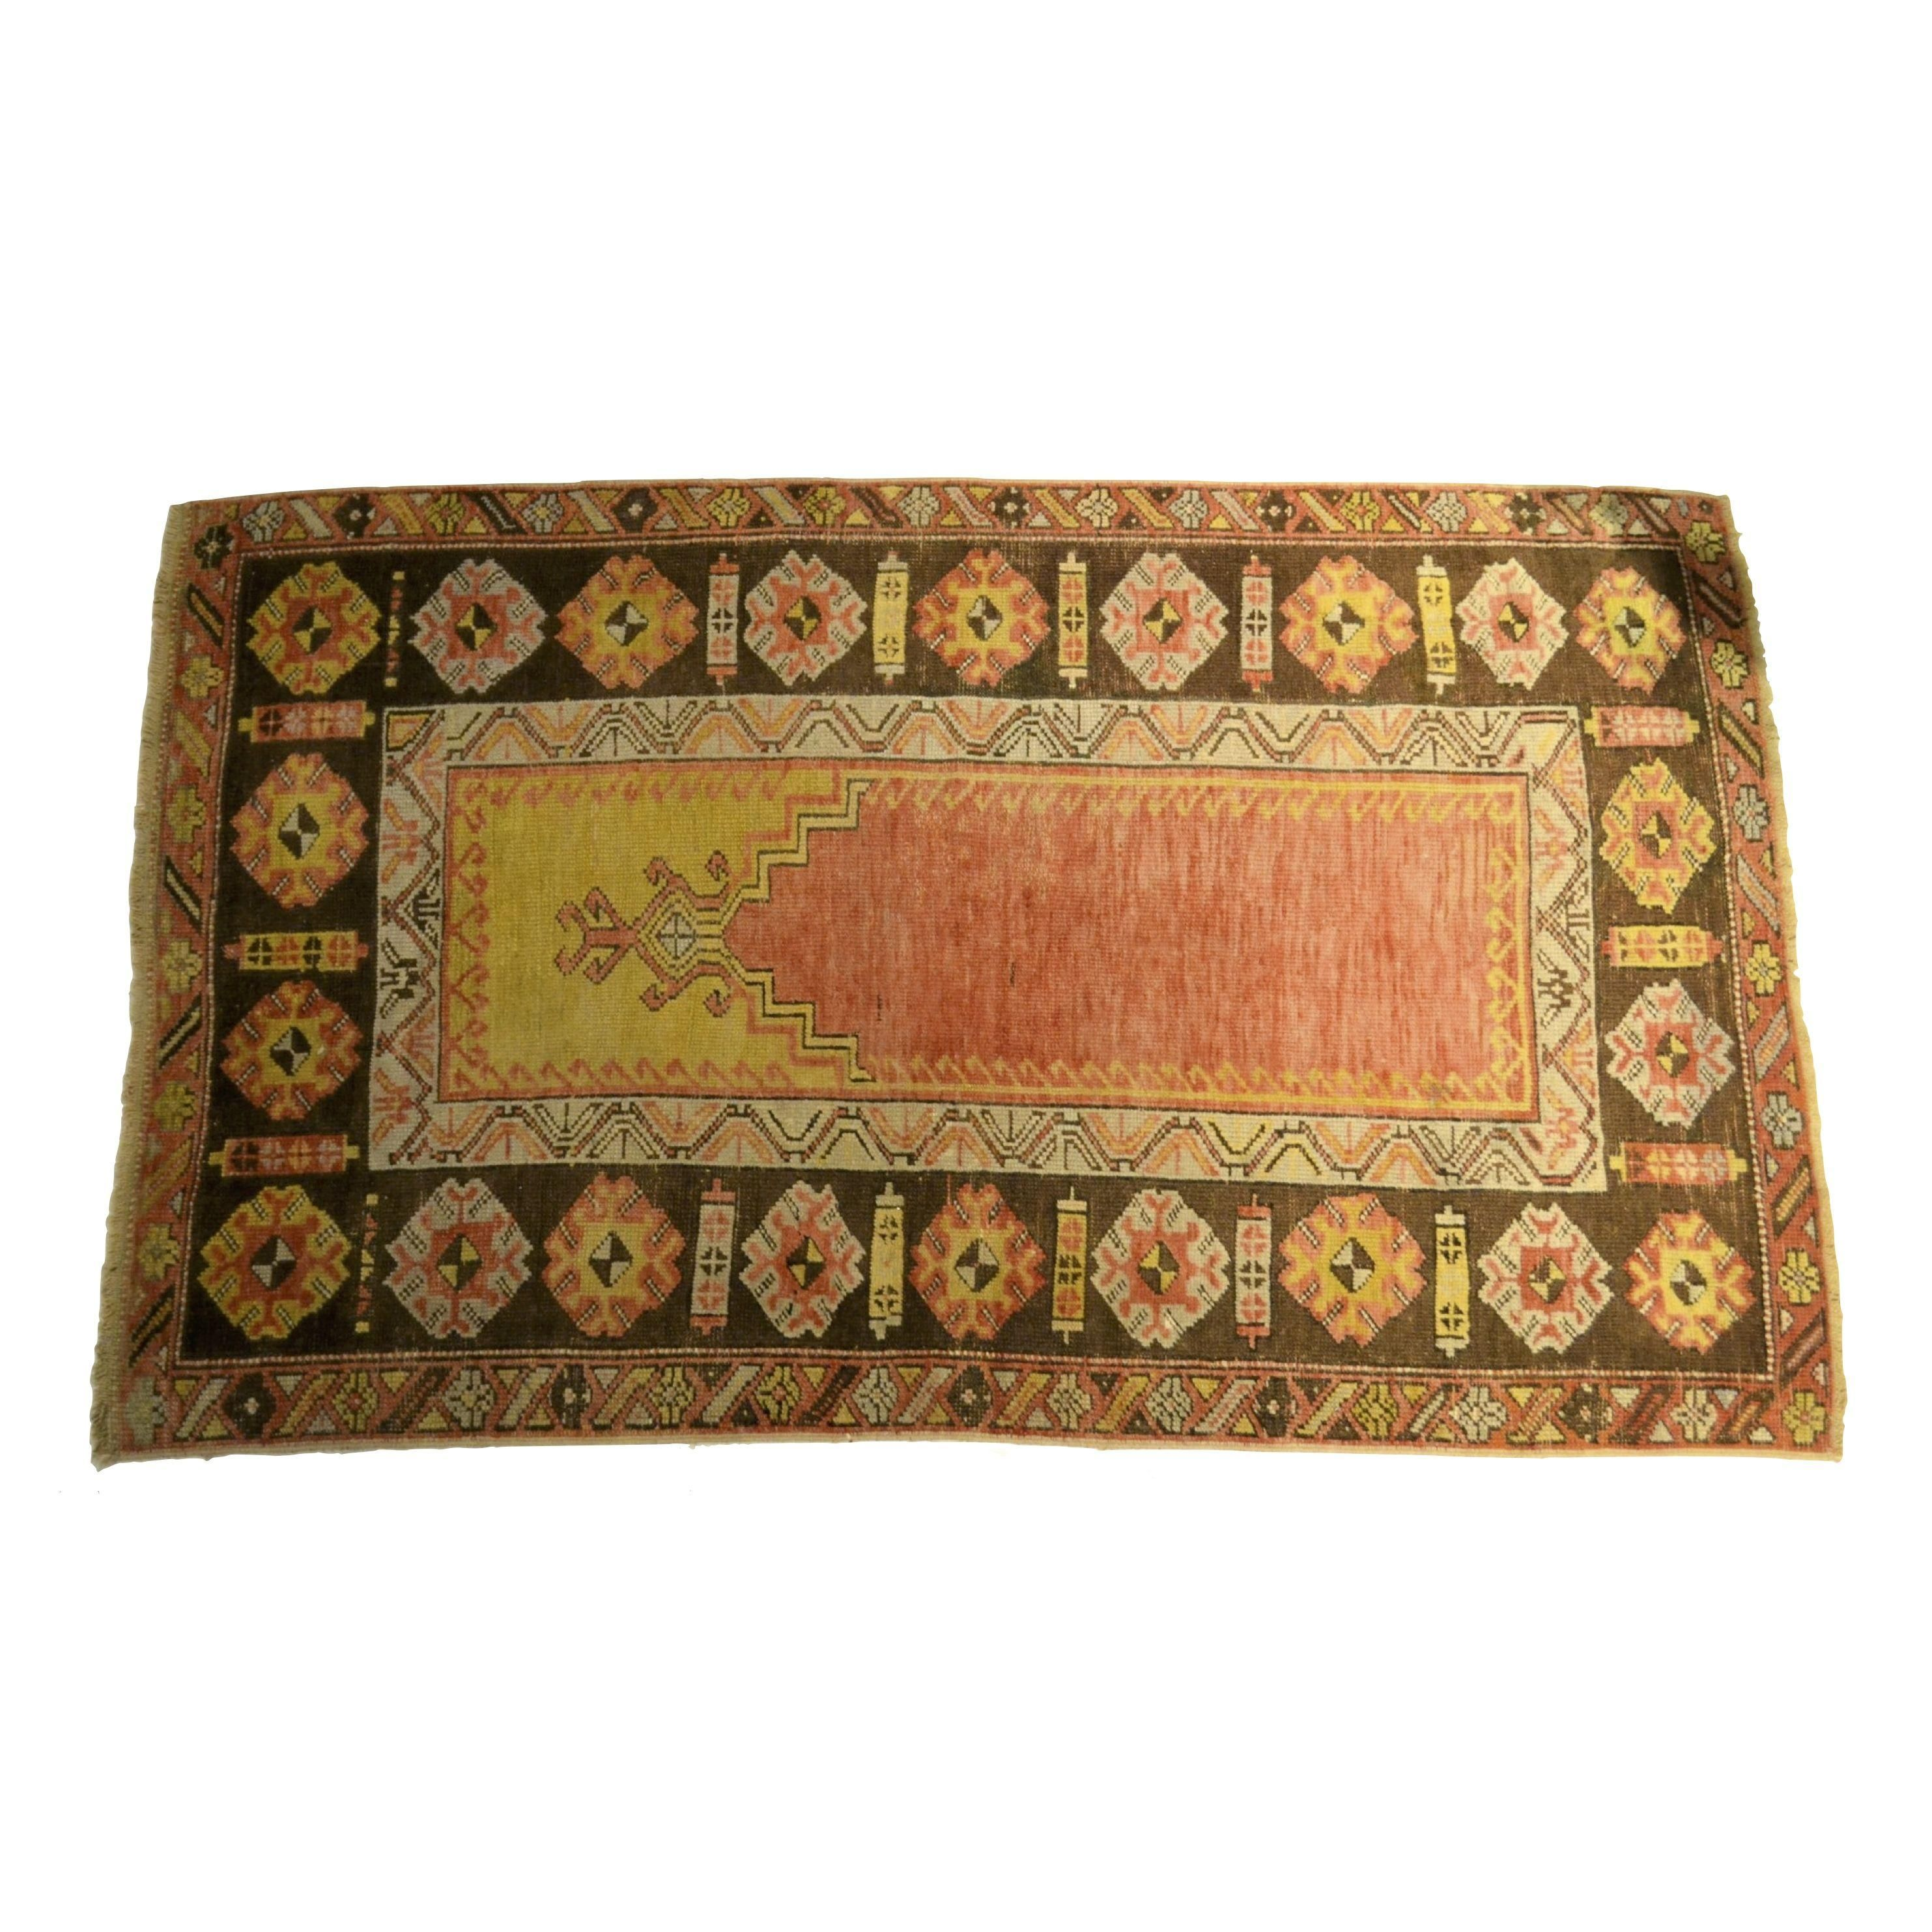 A vintage Turkish prayer rug in tones of brown and yellow. Age 60+ years.